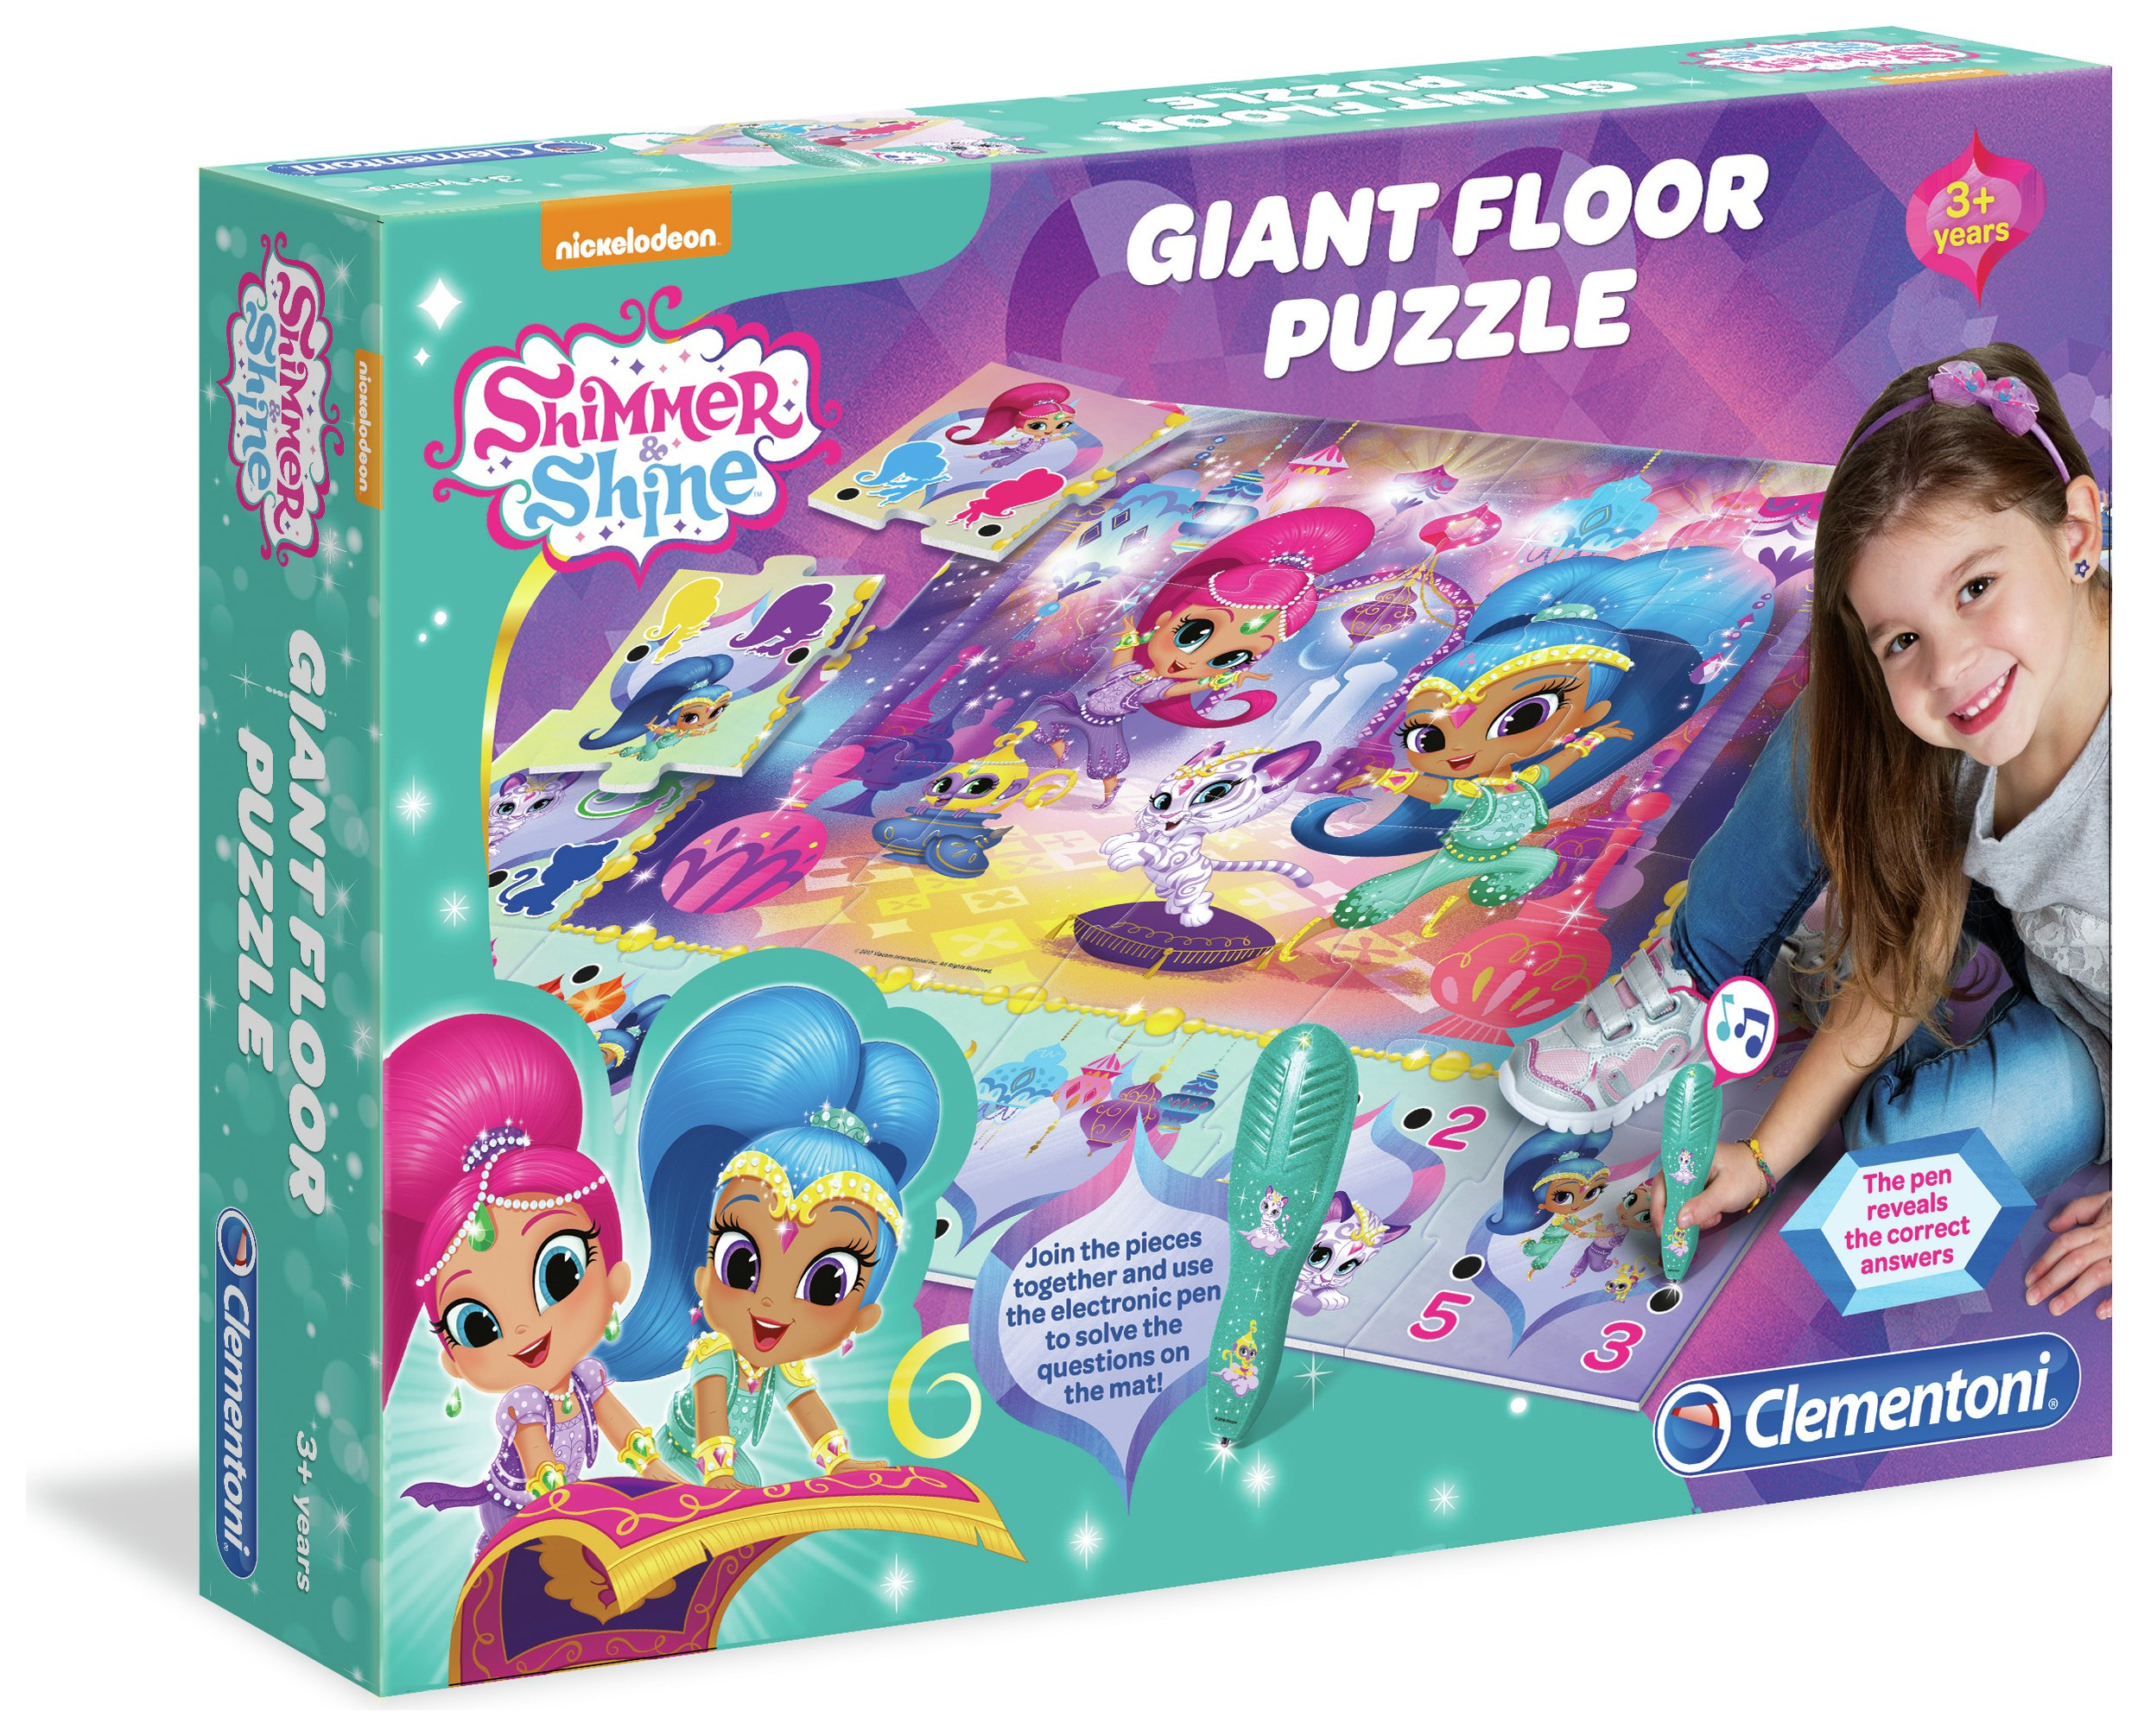 Clementoni Shimmer and Shine Giant Floor Puzzle review